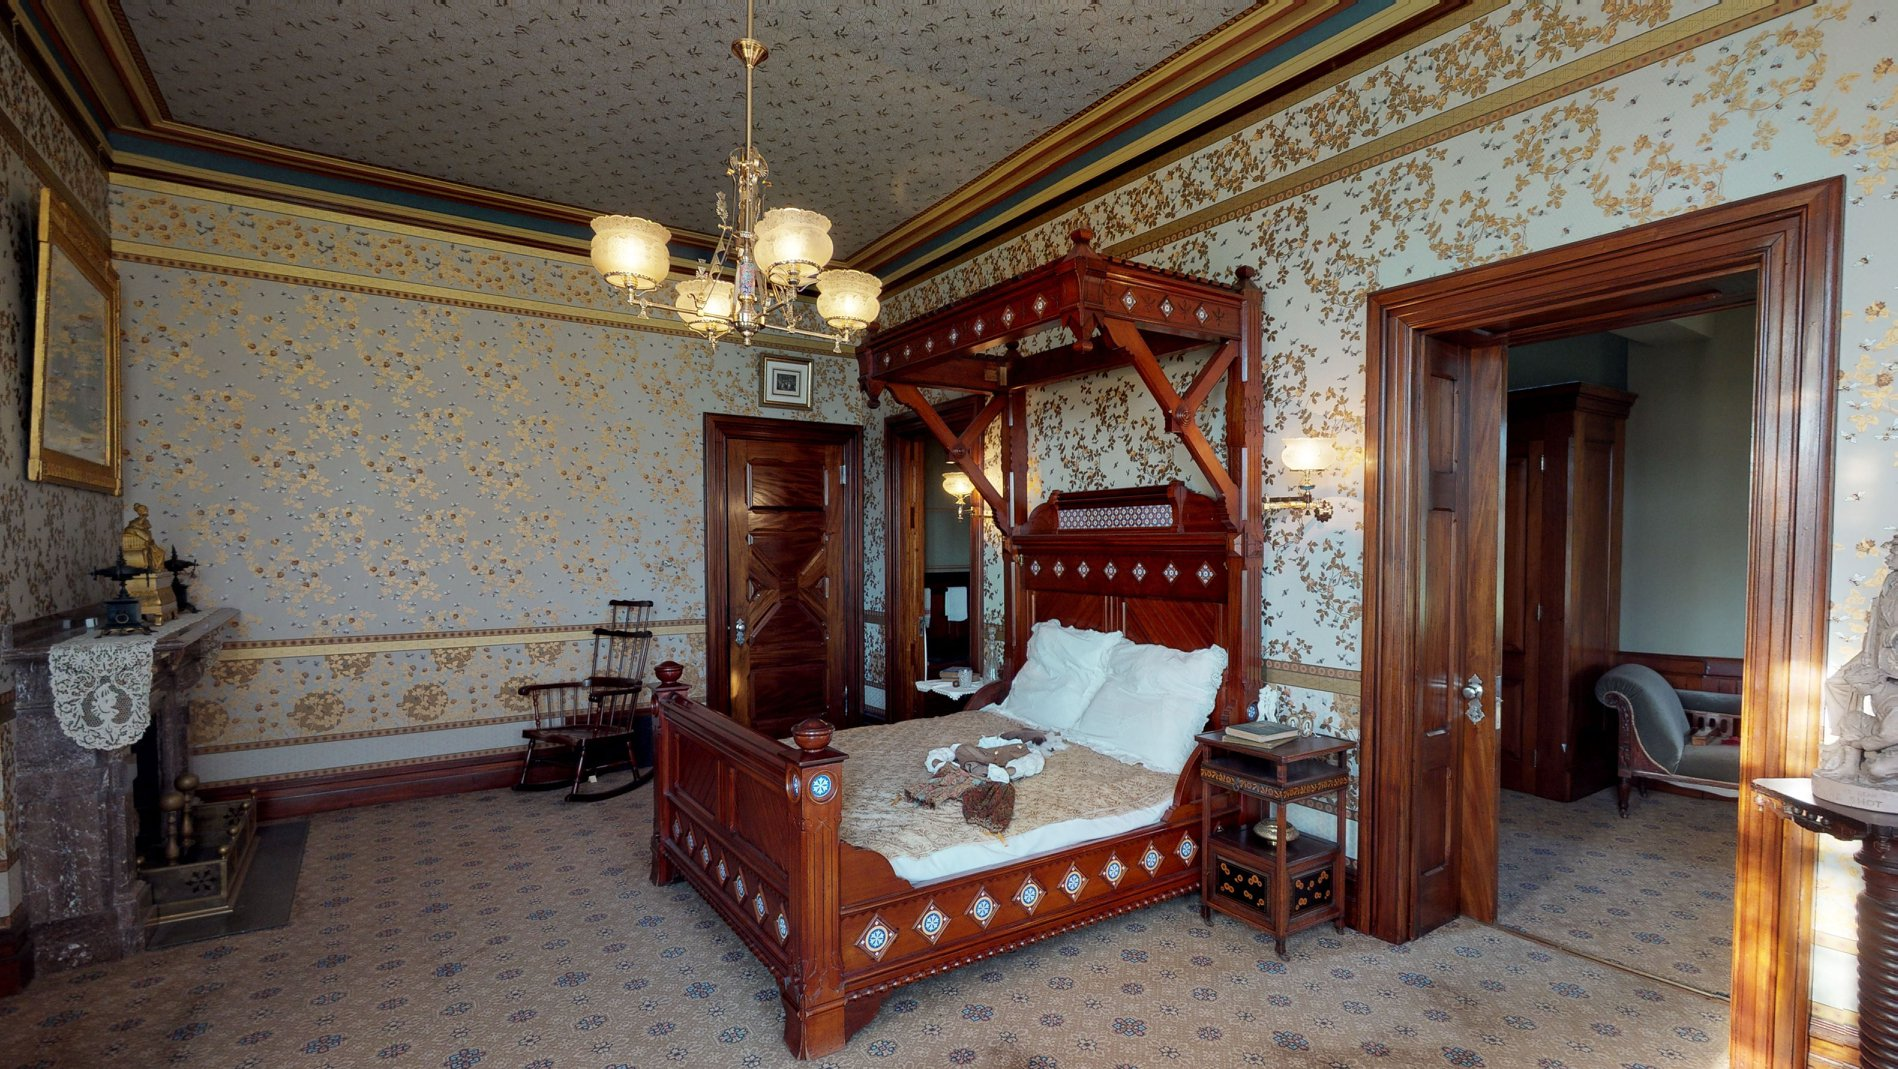 The Mahogany Room: The guest suite, that served as a green room for theatricals and Mrs. Clemens wrapping area for her charities